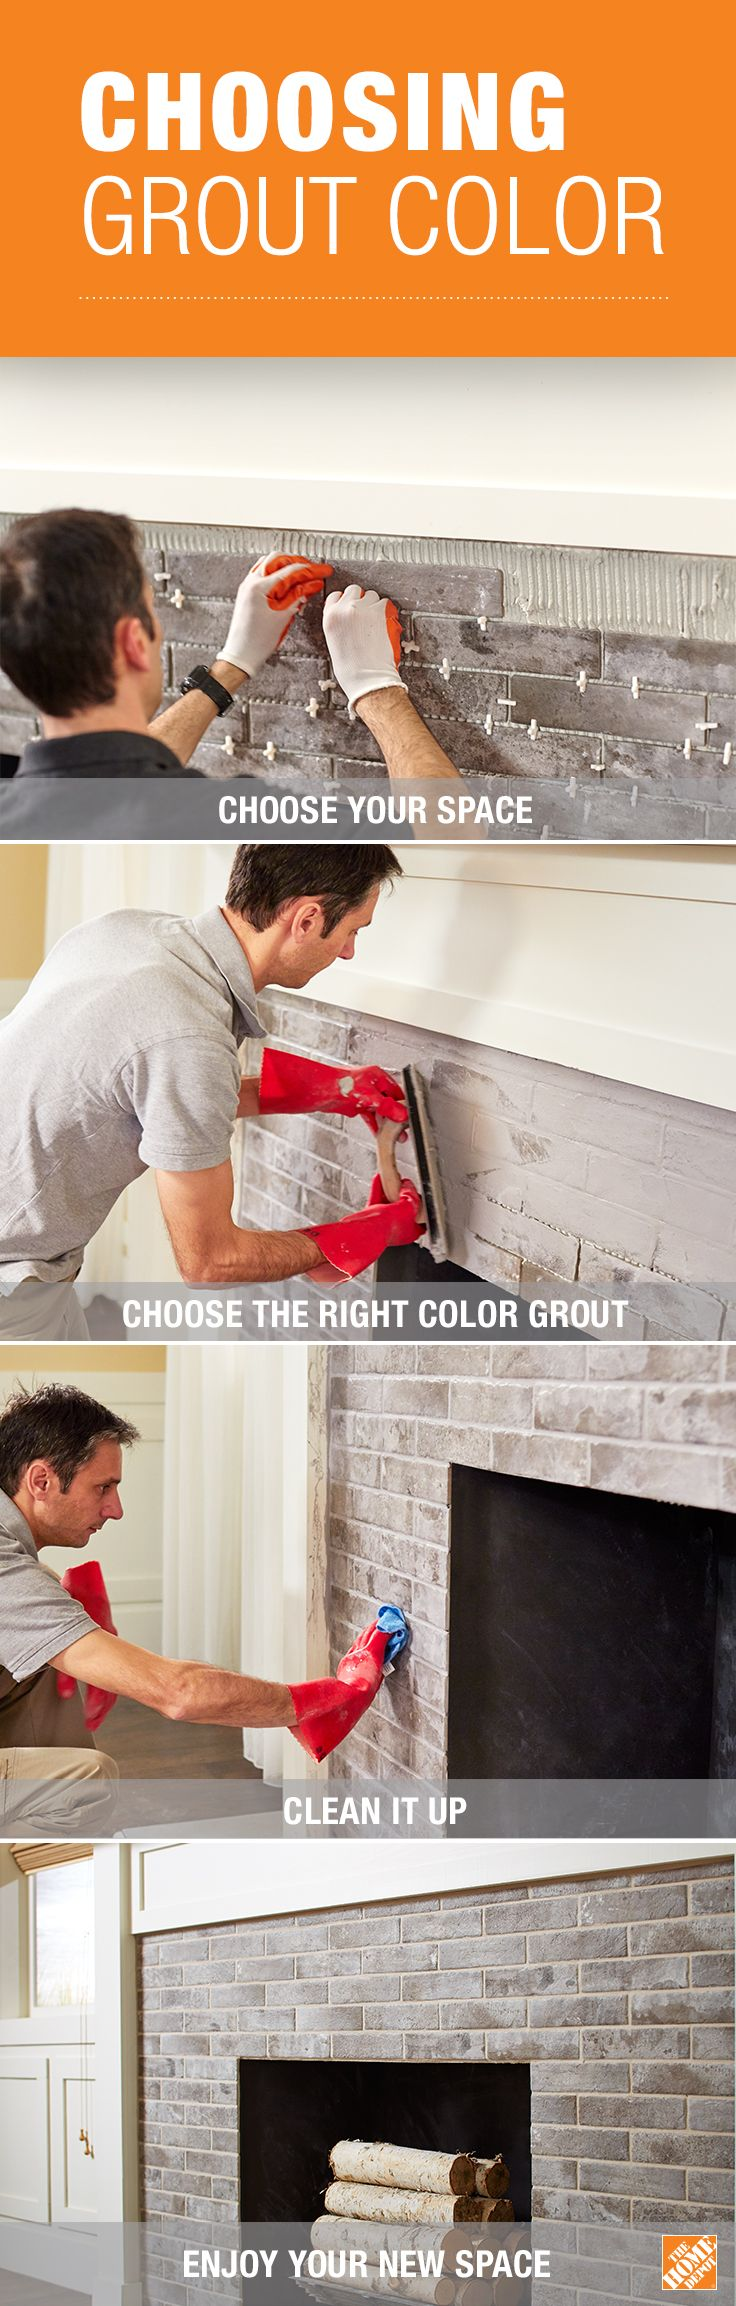 You can get the best look and performance by choosing the right color with color perfect Fusion Pro® Grout. Click through to The Home Depot Blog for grout and tiling tips.